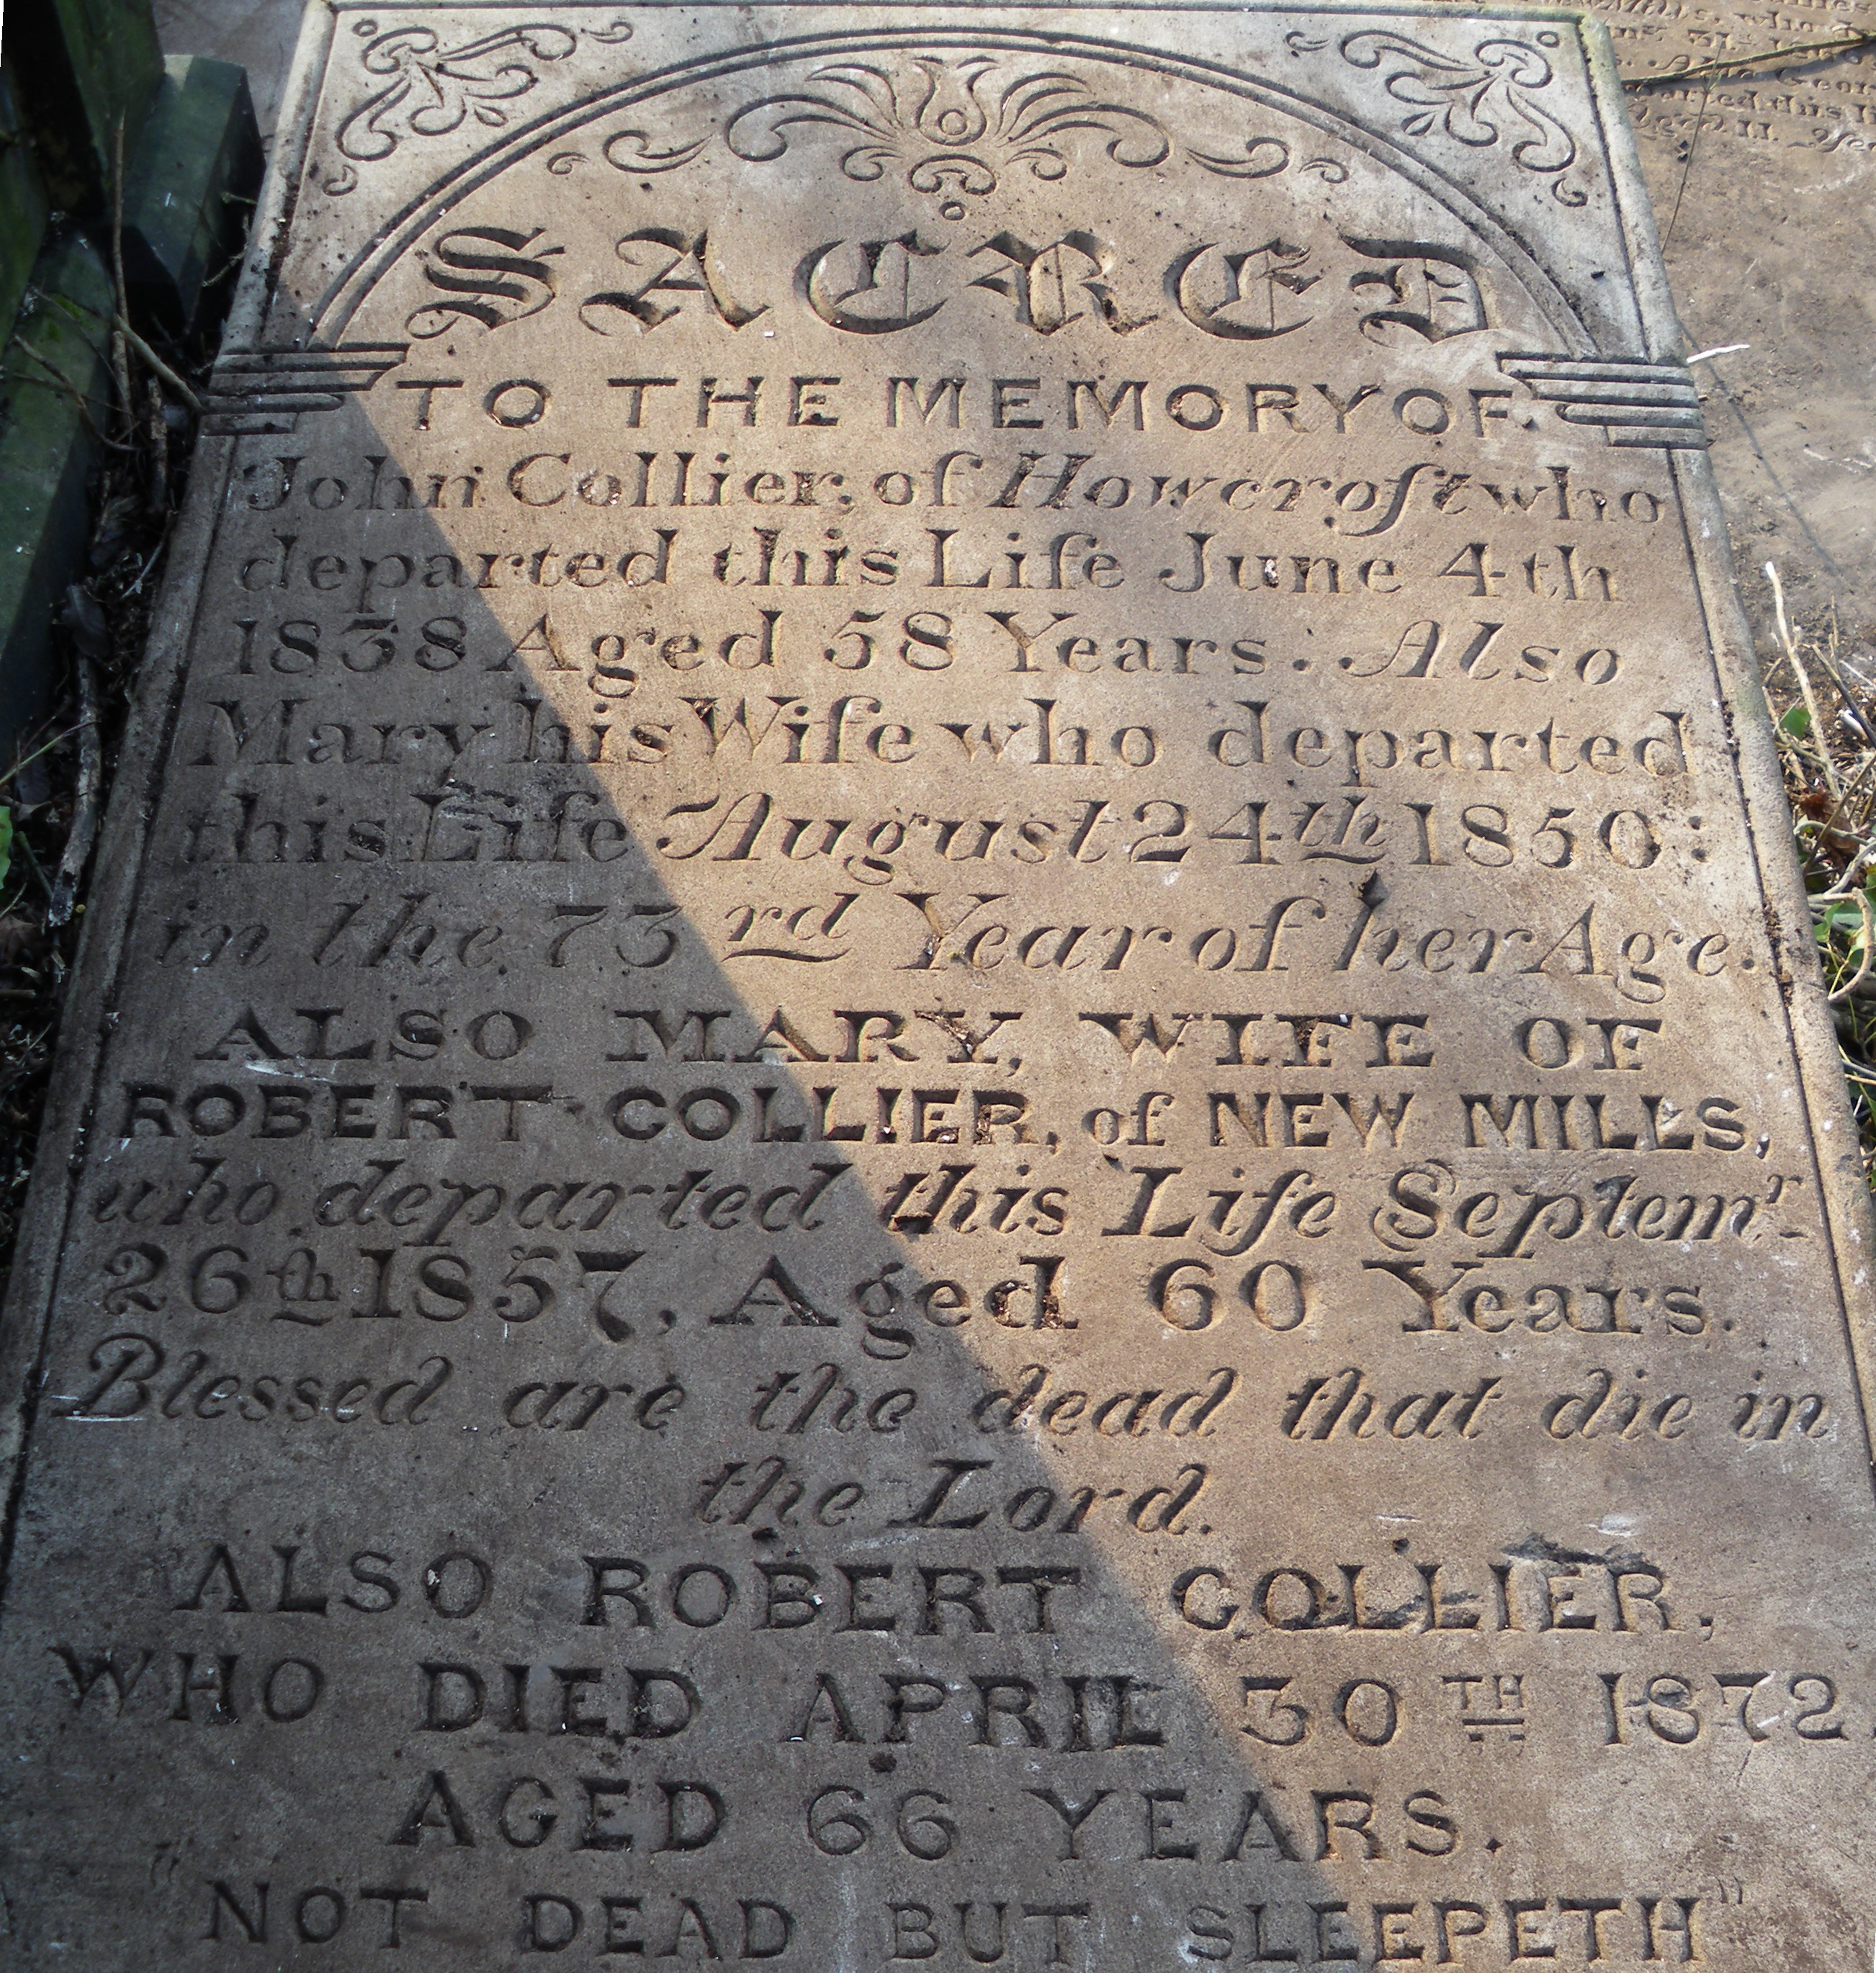 Tomb of Robert Collier